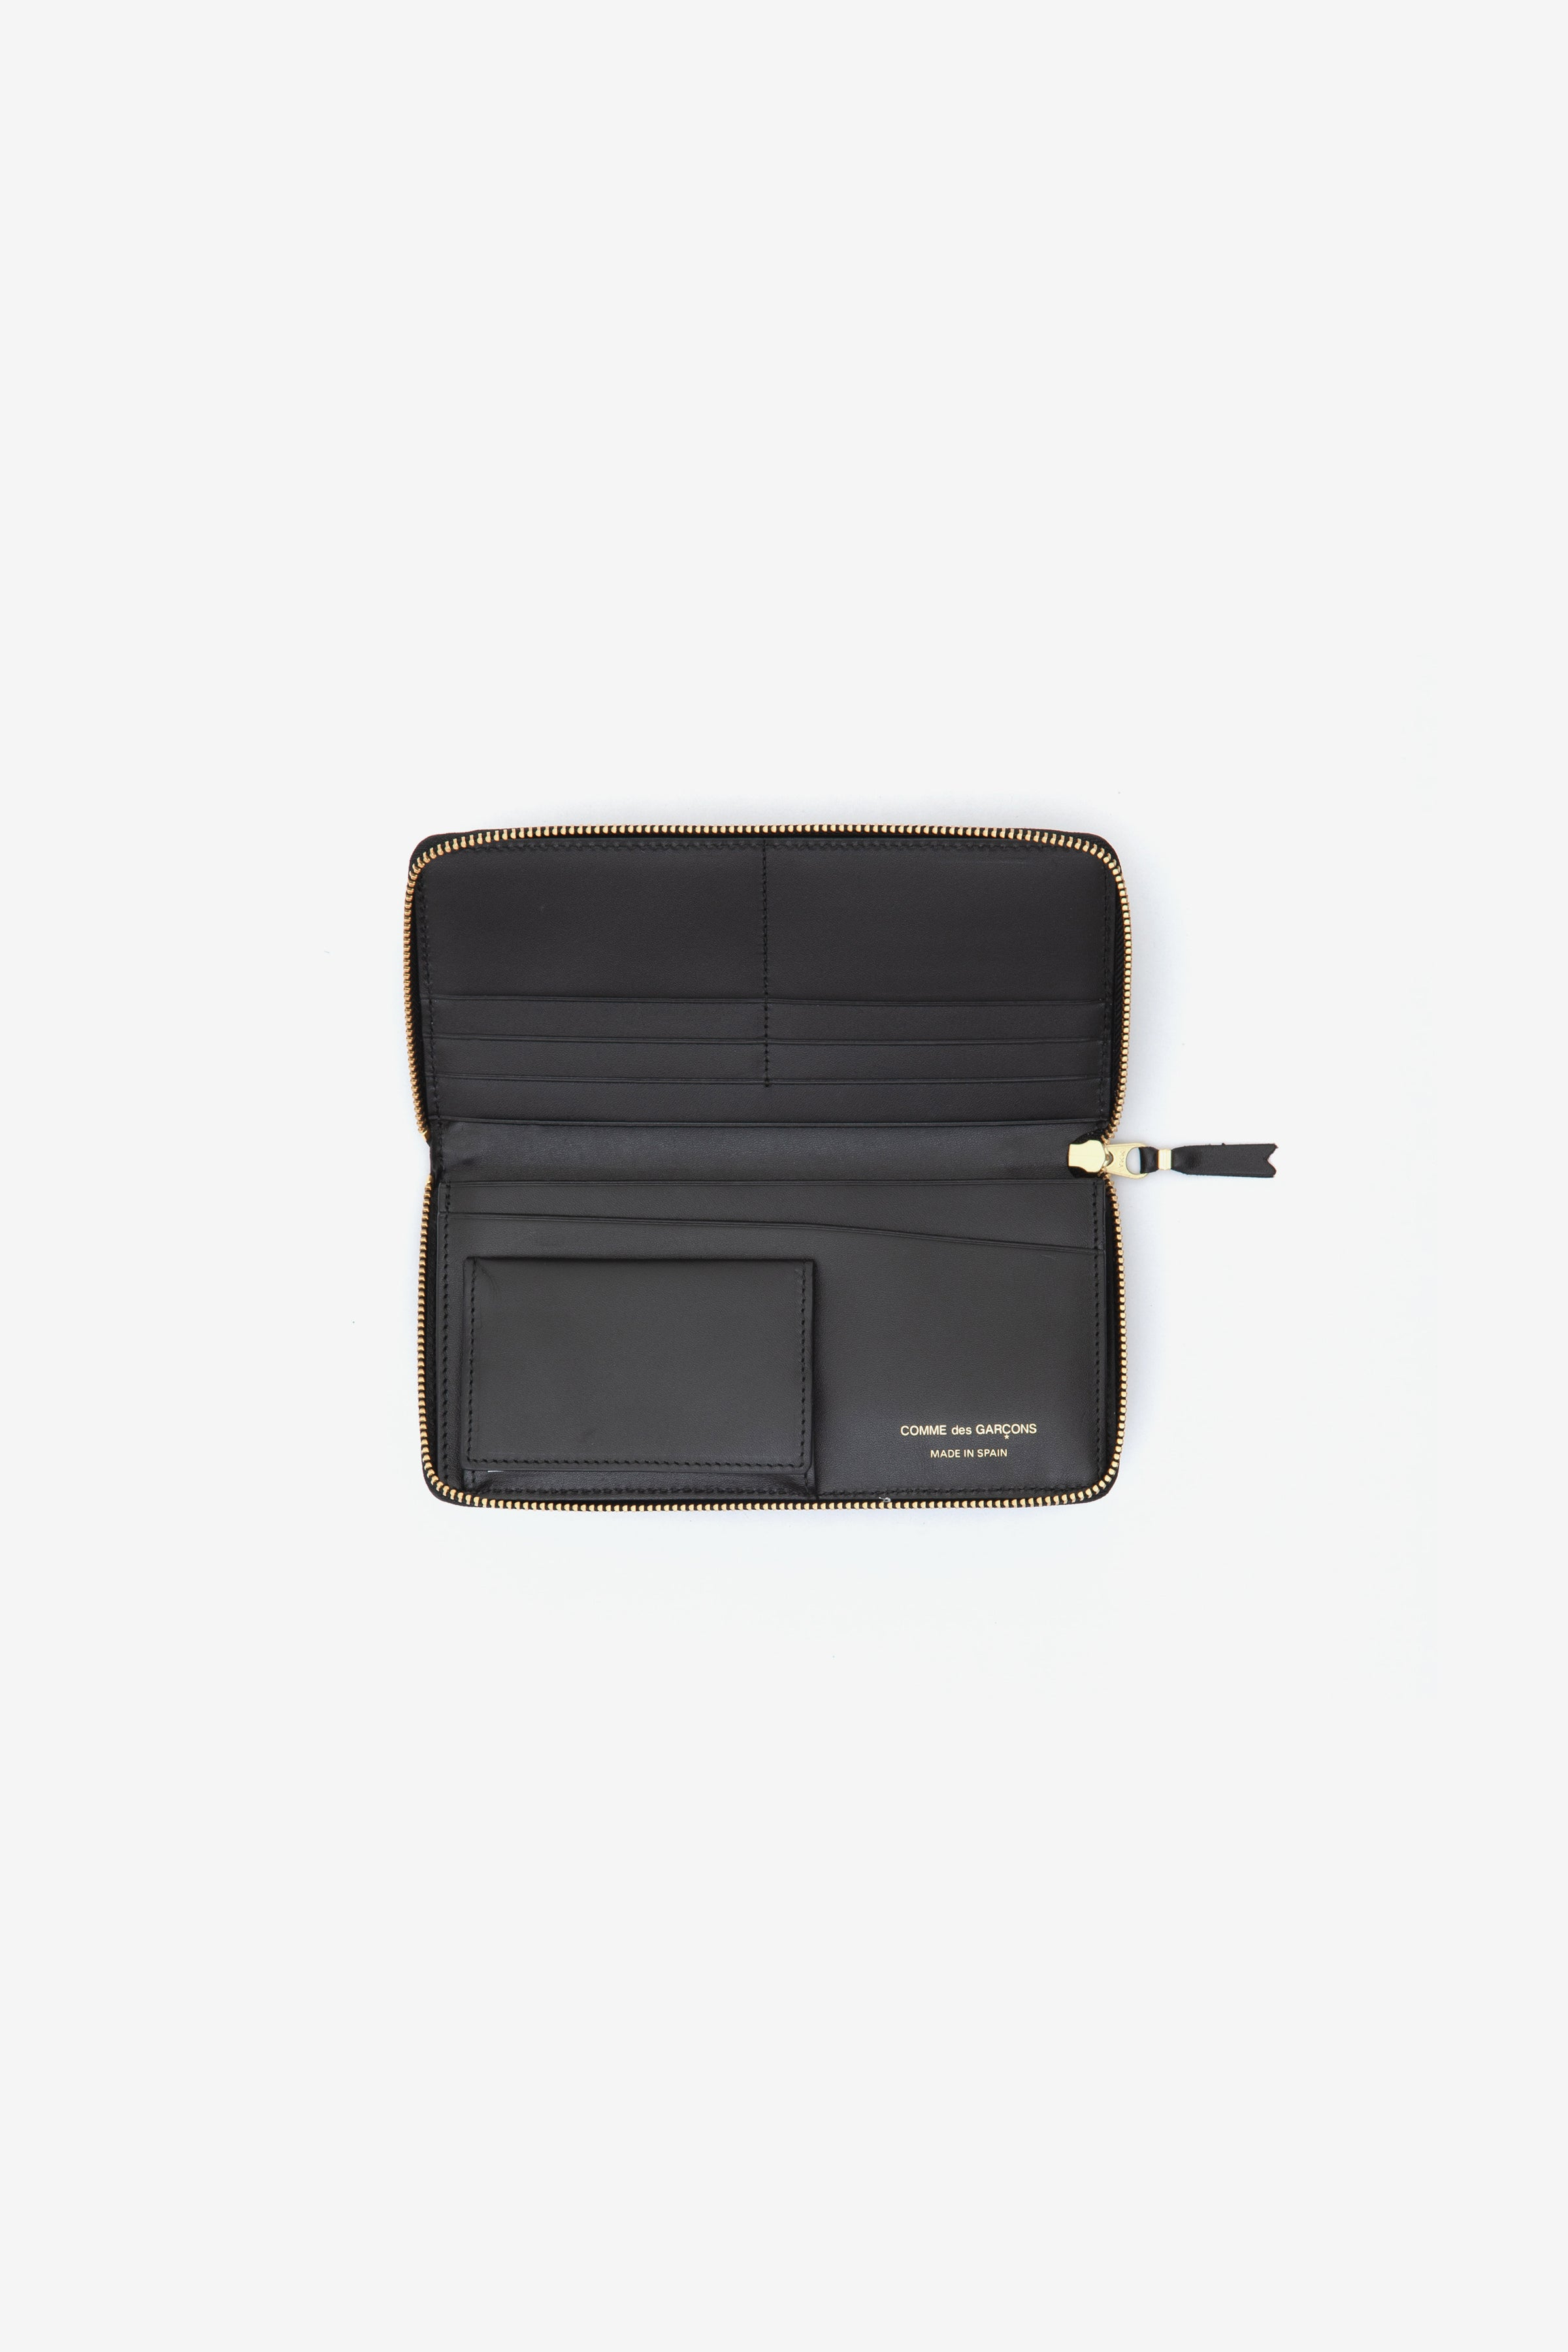 Comme Des Garcons Wallet Classic Black Leather 190mm x 120mm